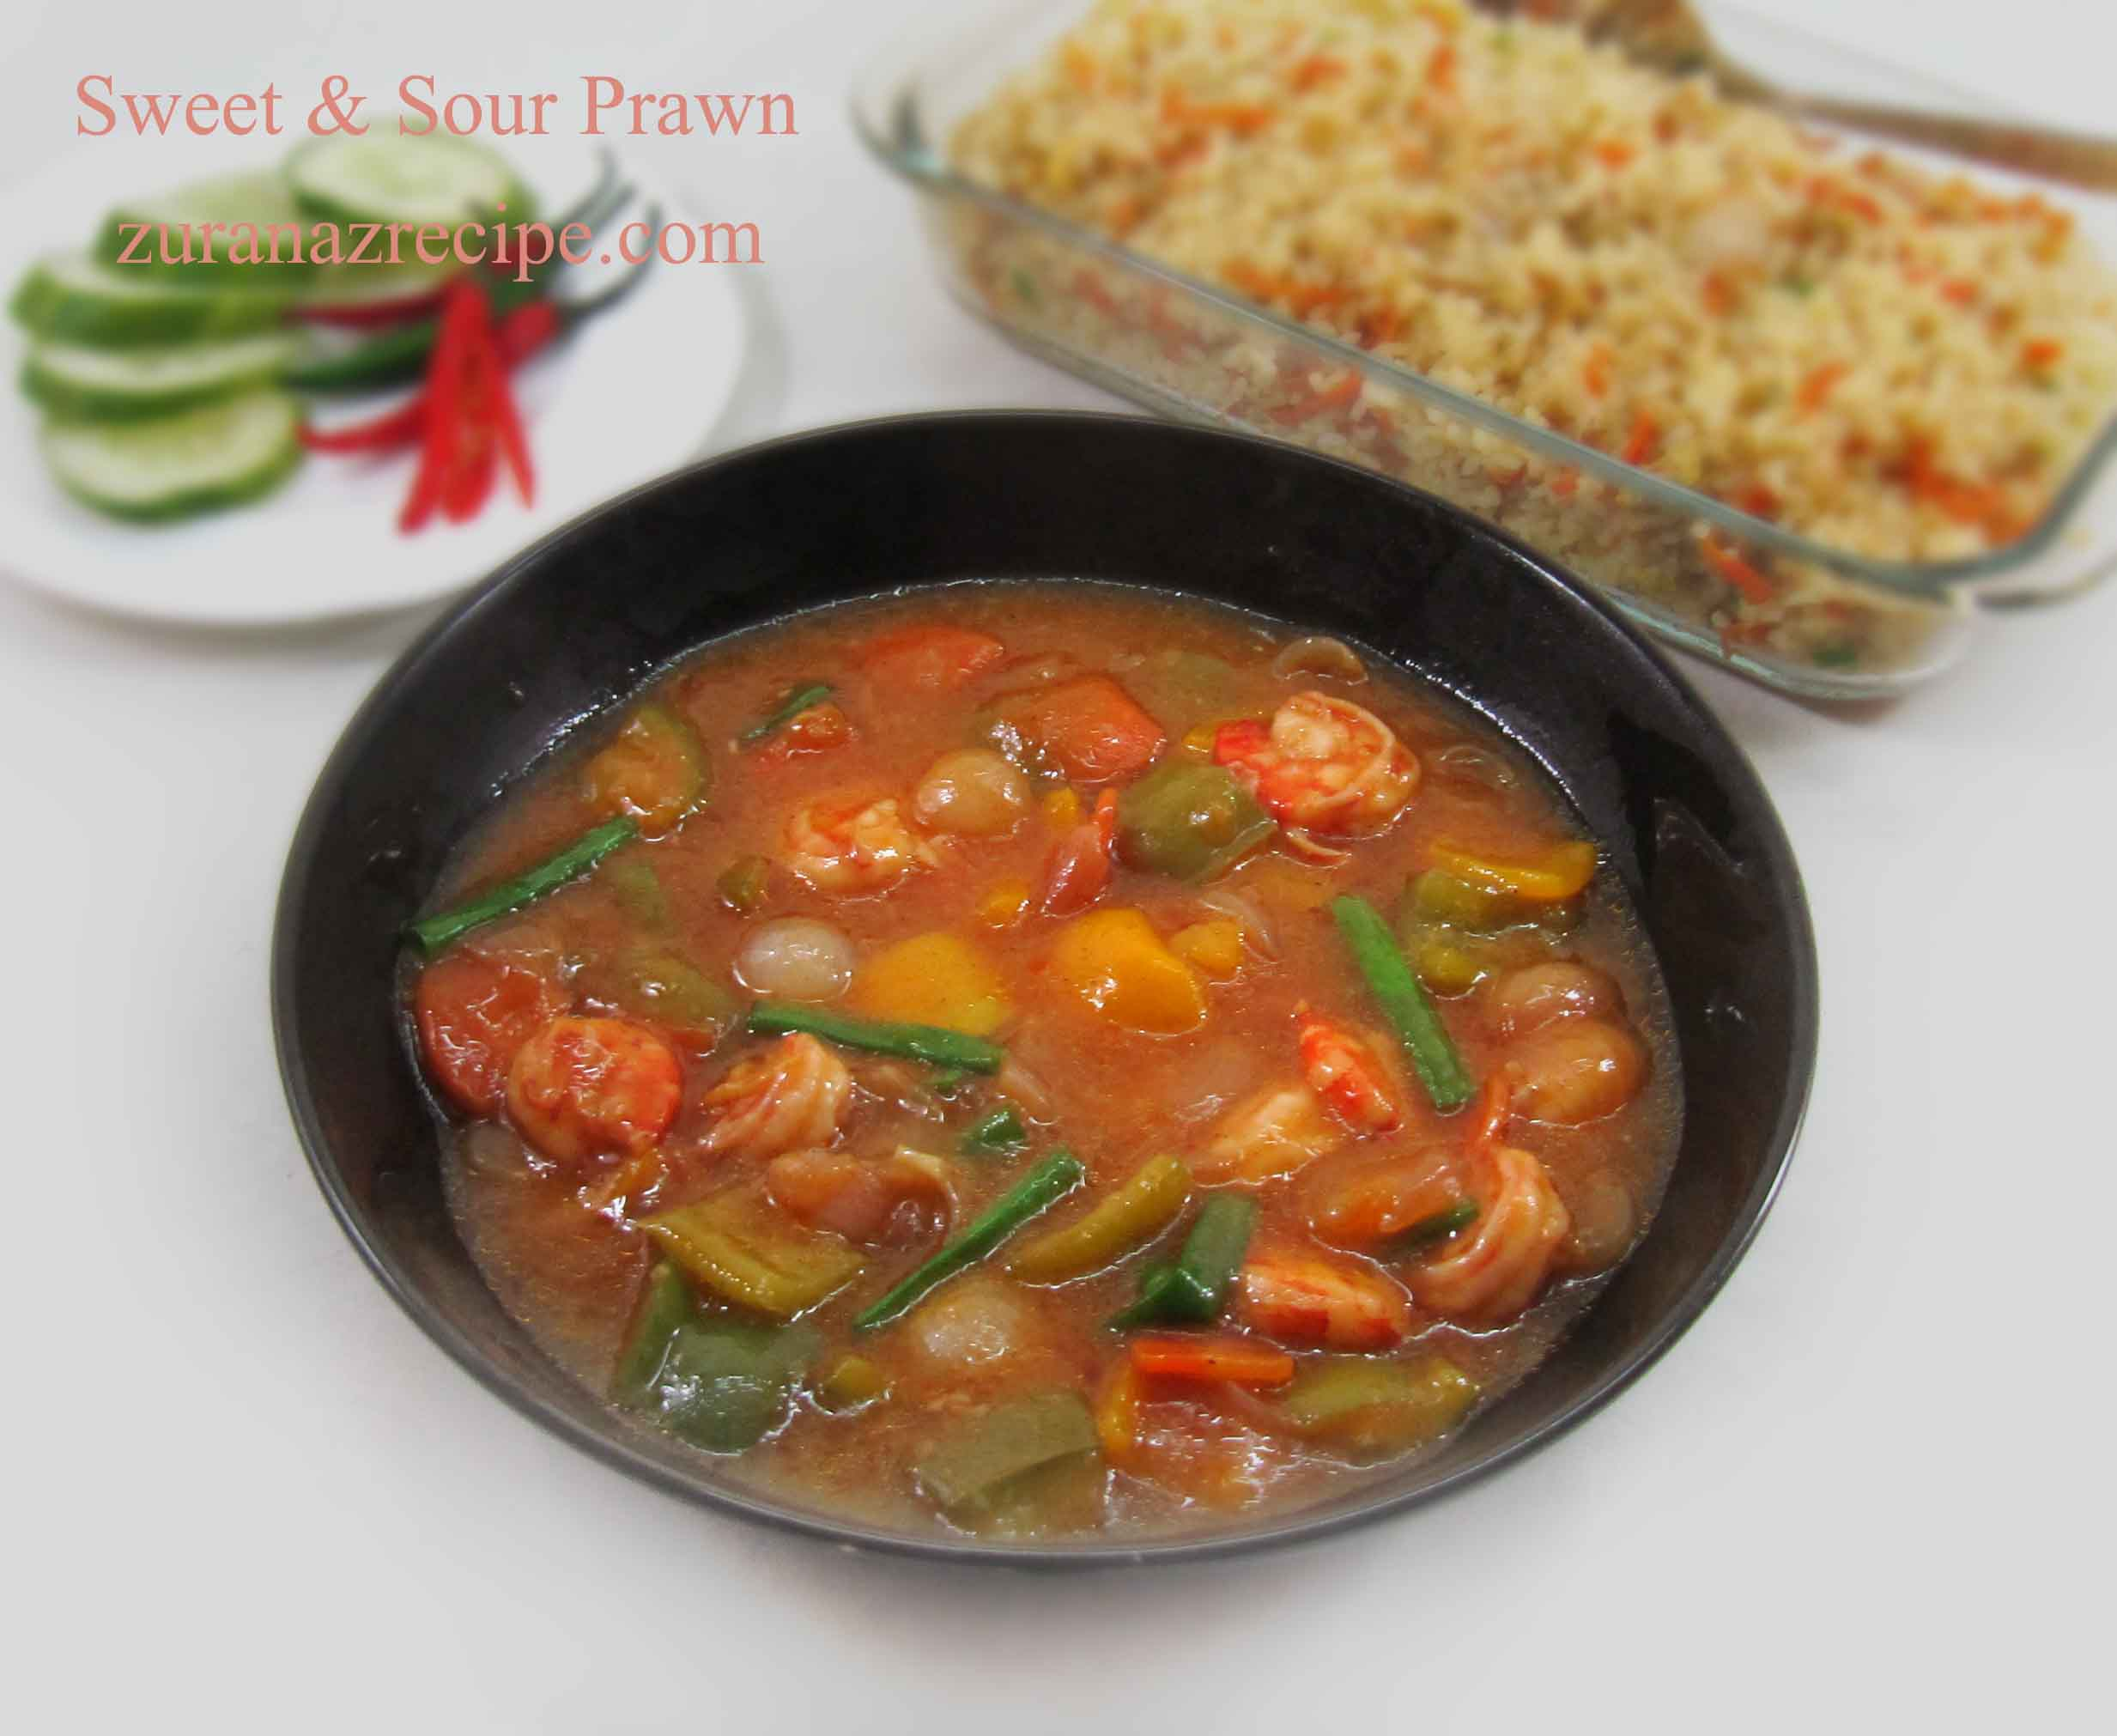 Sweet & Sour Prawn